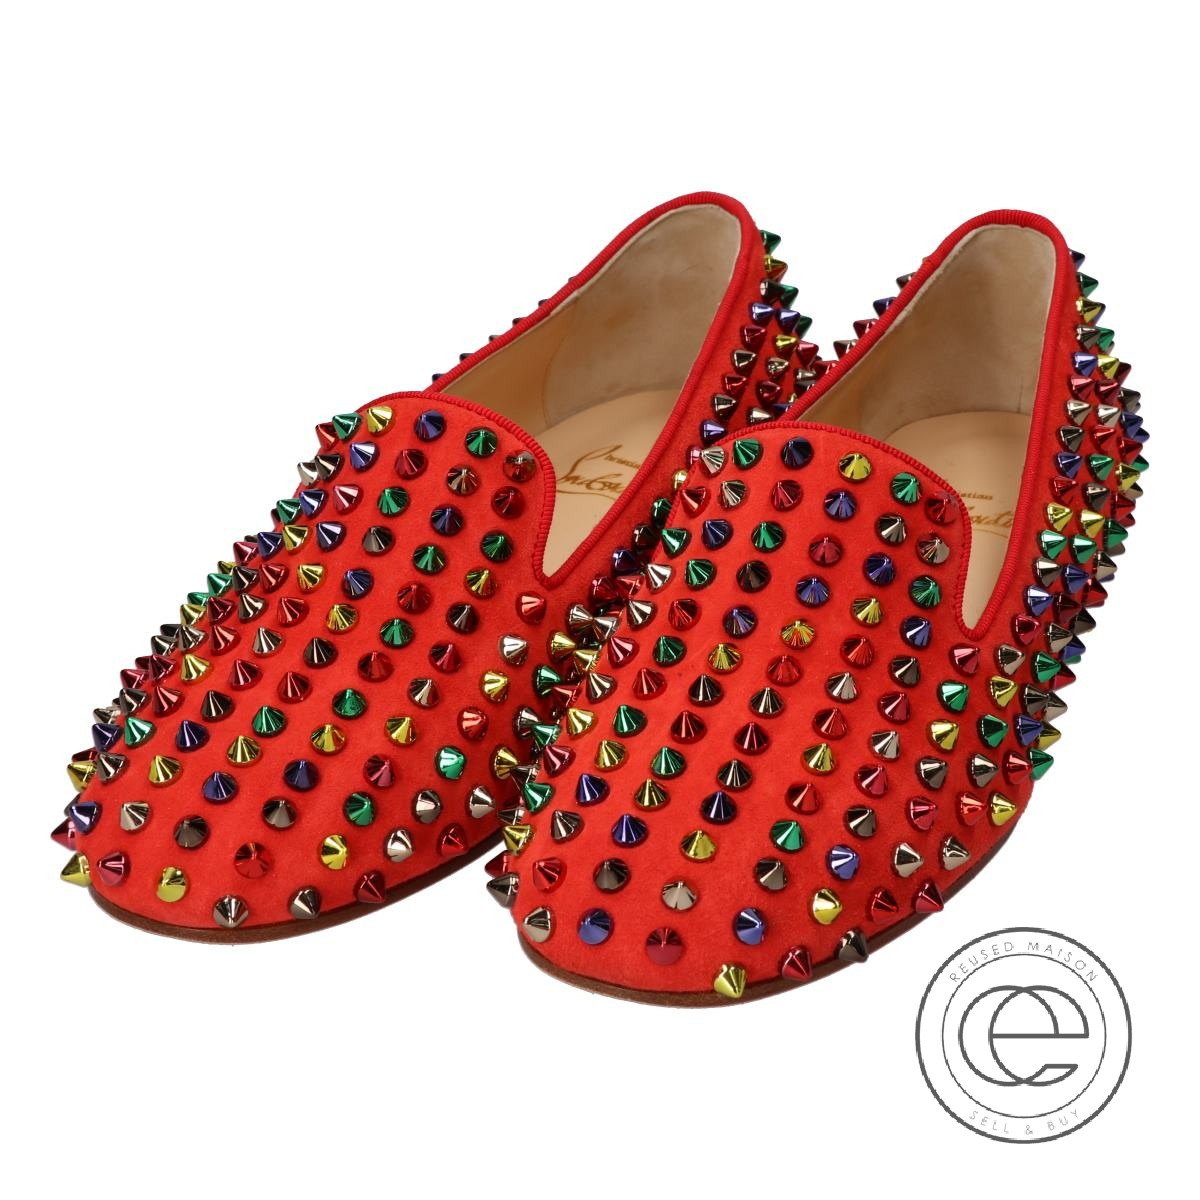 3b81a9d4de2 Christian Louboutin クリスチャンルブタン 1121095 ROLLING SPIKES FLAT VEAU VELOURS/GG  Rawlings pike flat bell bed flattie 36 red / ...